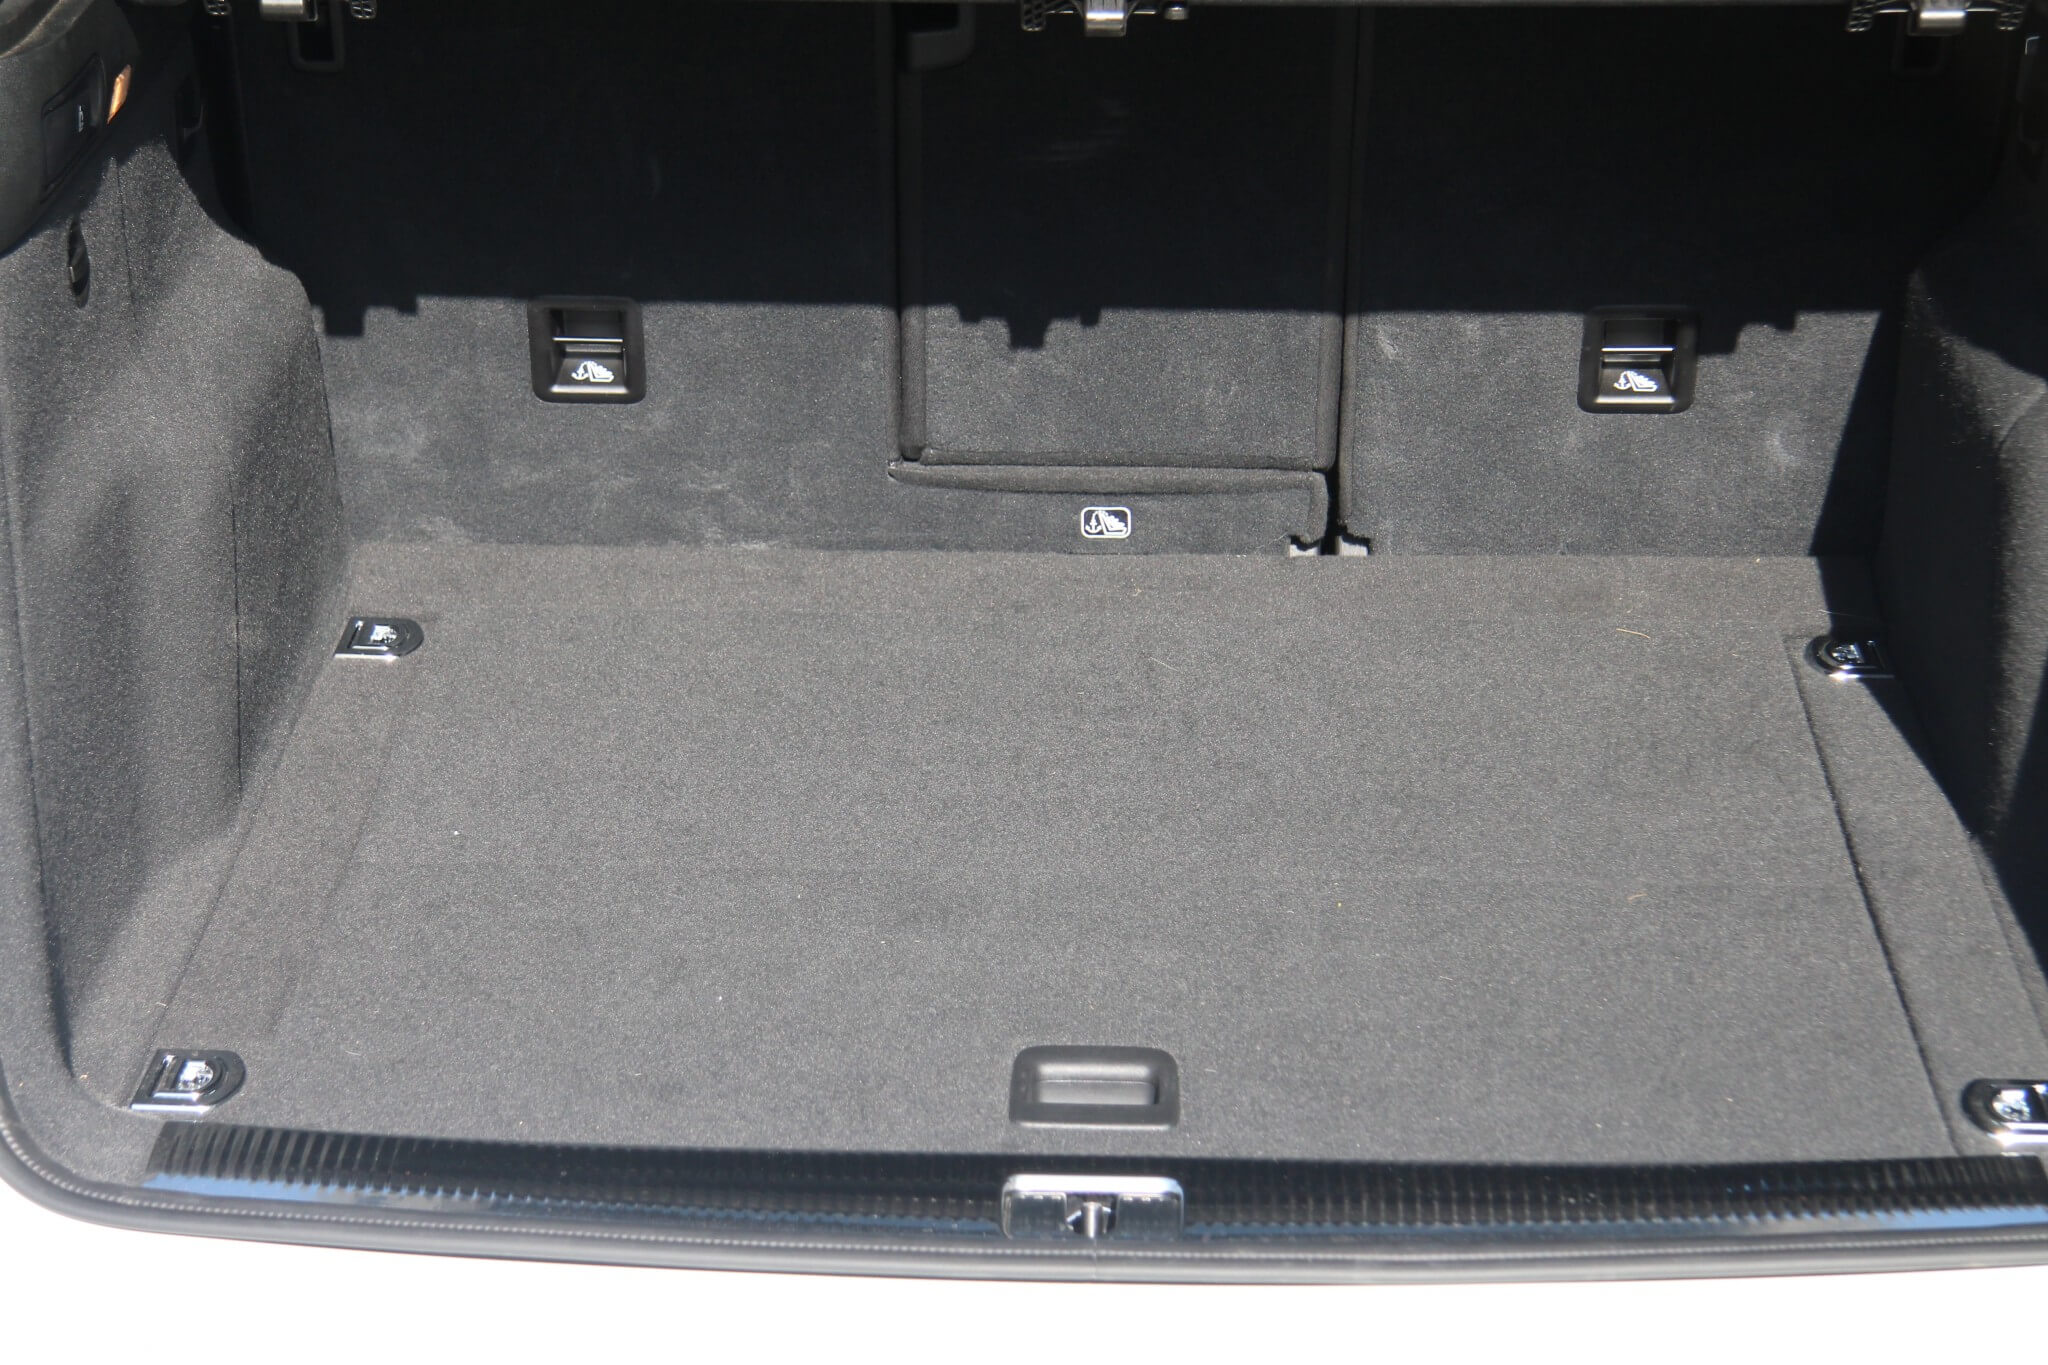 The Q5 offers a large cargo space in the hatch area. Also note the split 60/40 rear seats and the pass-through rear center console area that expands cargo-carrying capabilities.